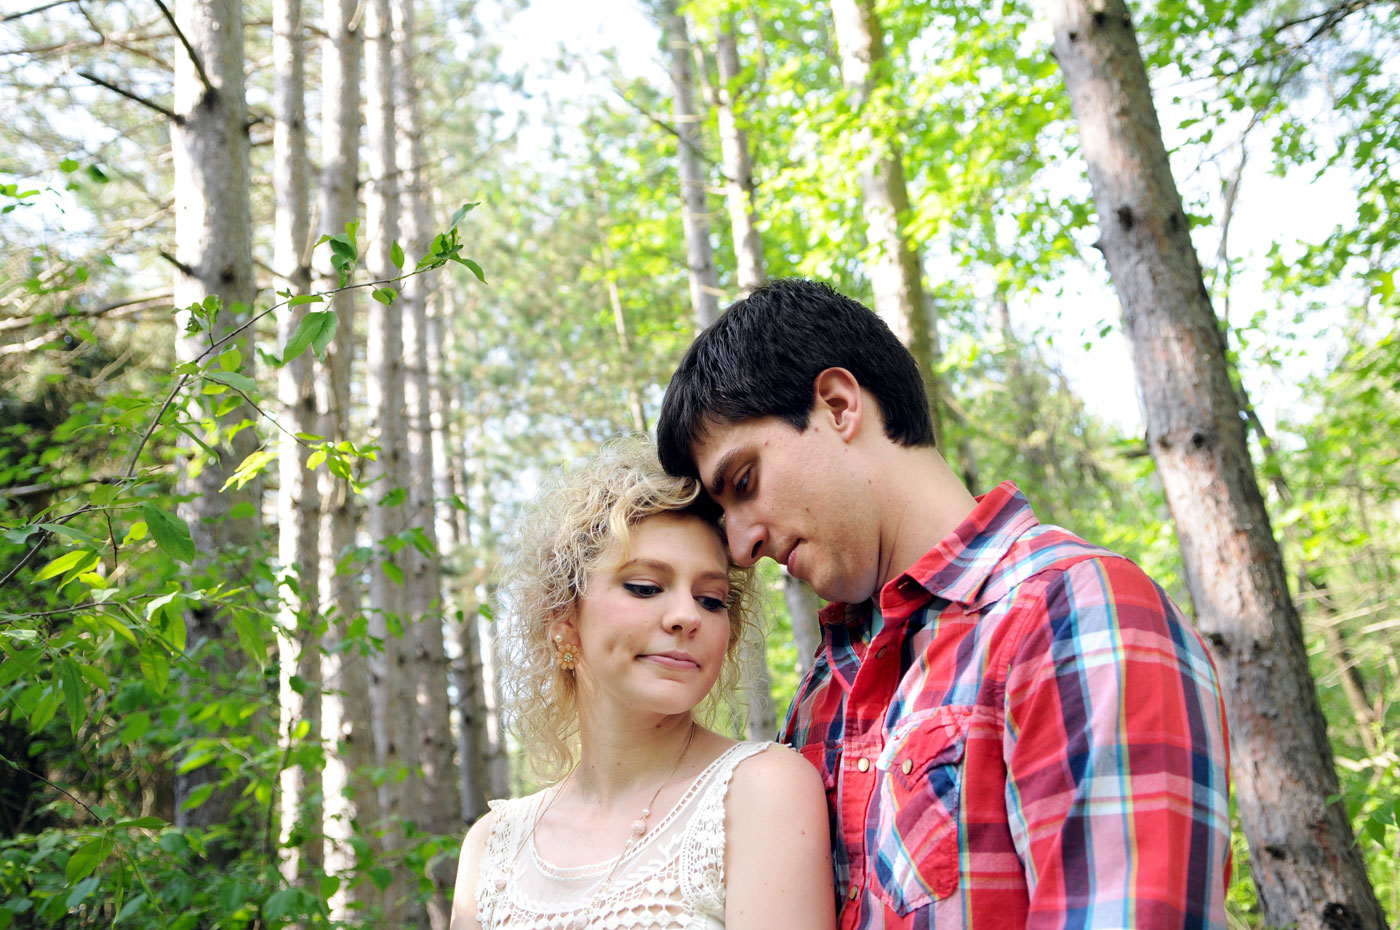 kaylen-aaron-engagement-country-st-clair-michigan-stunning-intimate-rustic-travel-2